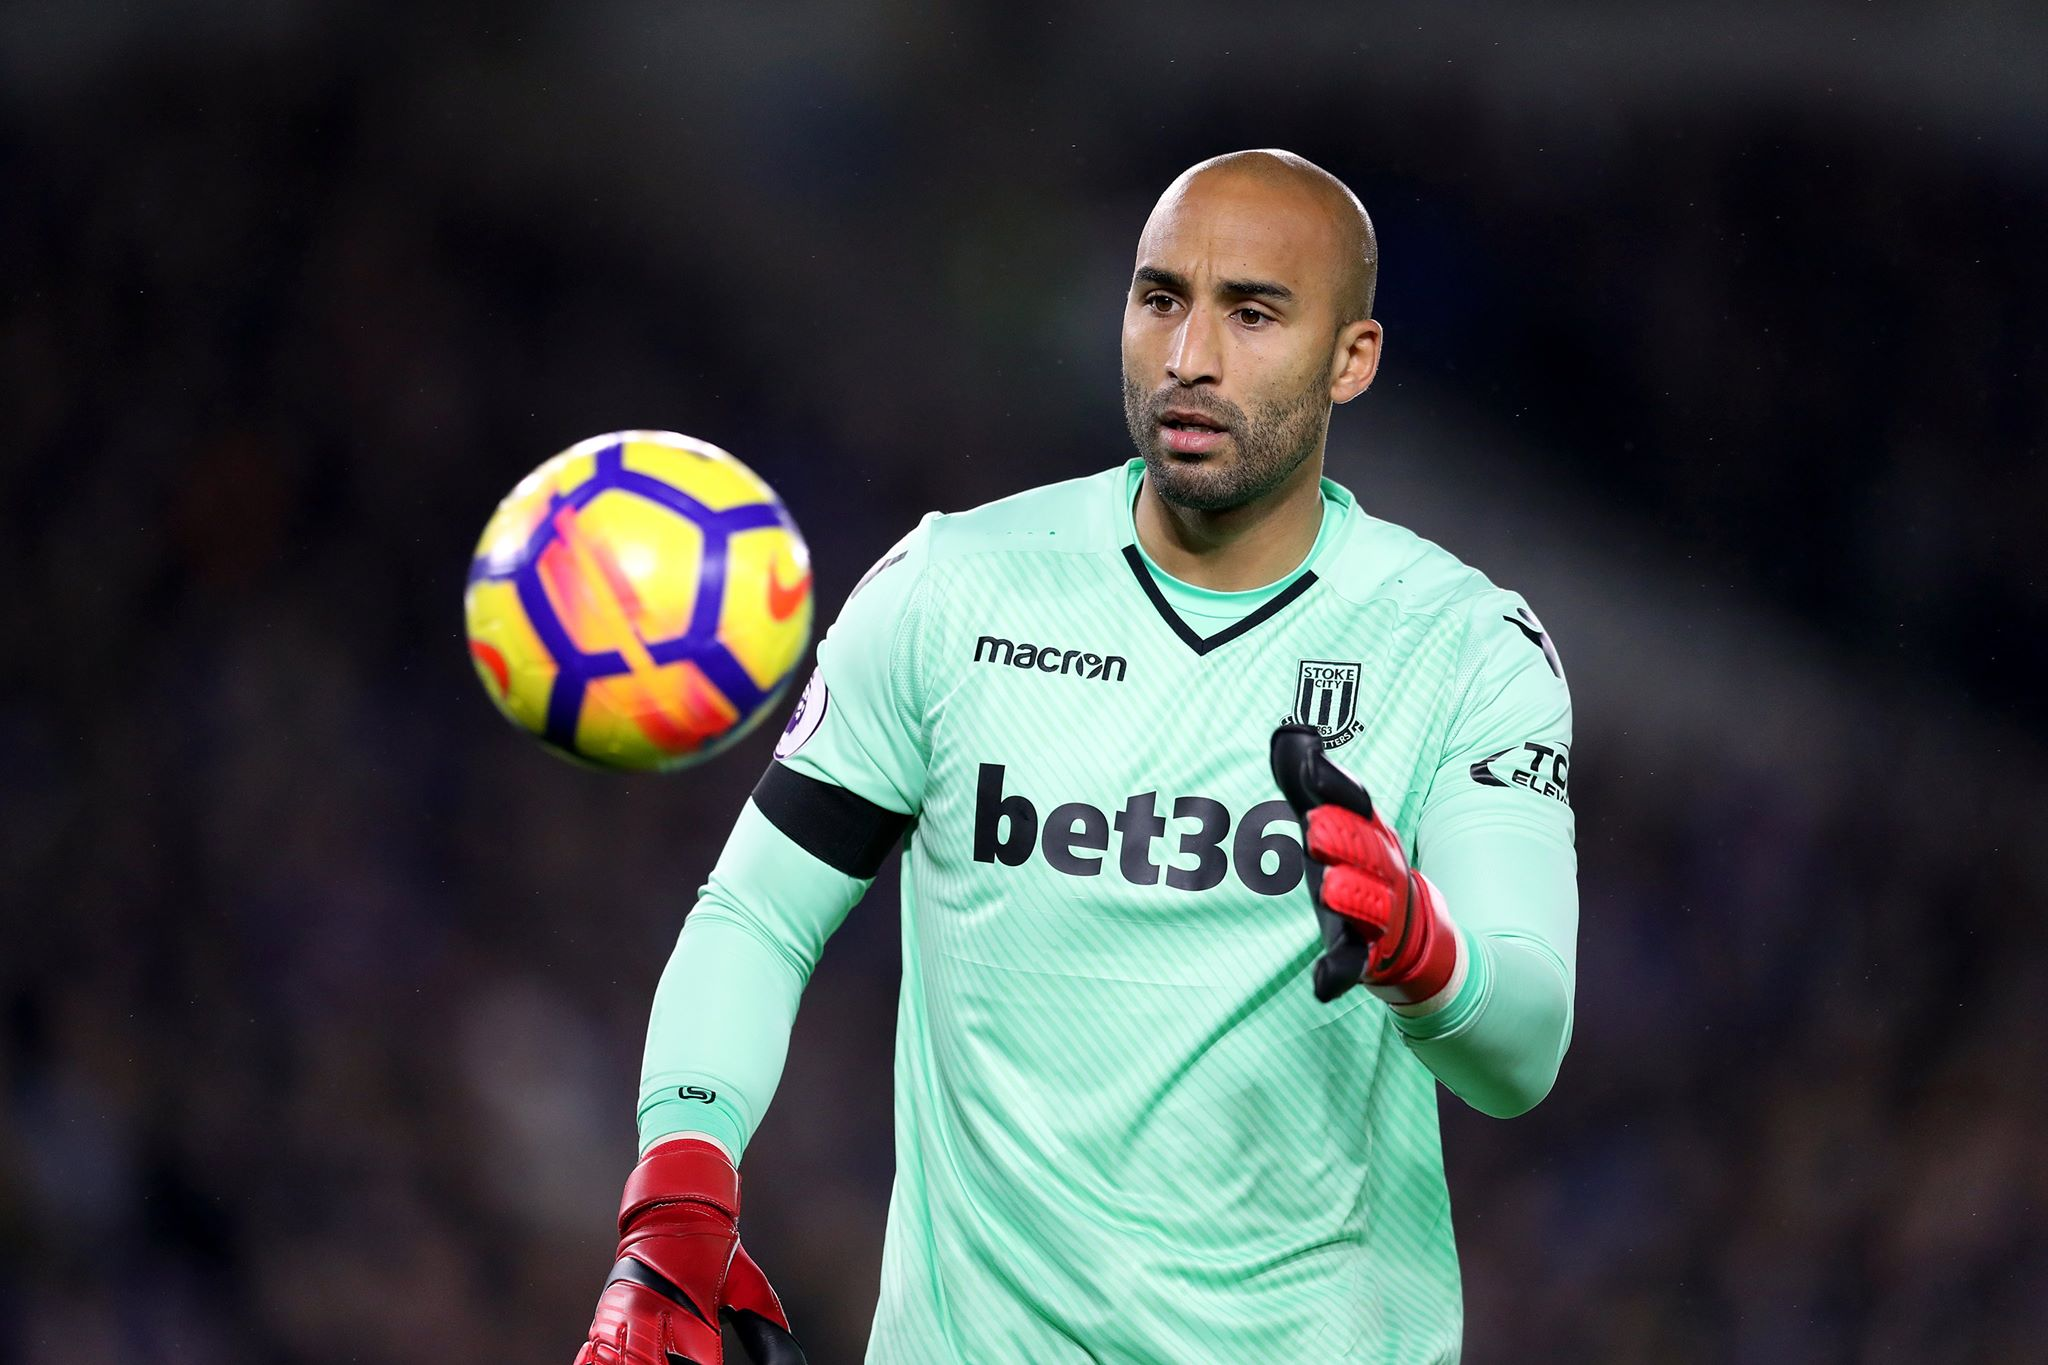 Manchester United have completed the signing of Stoke City goalkeeper Lee Grant